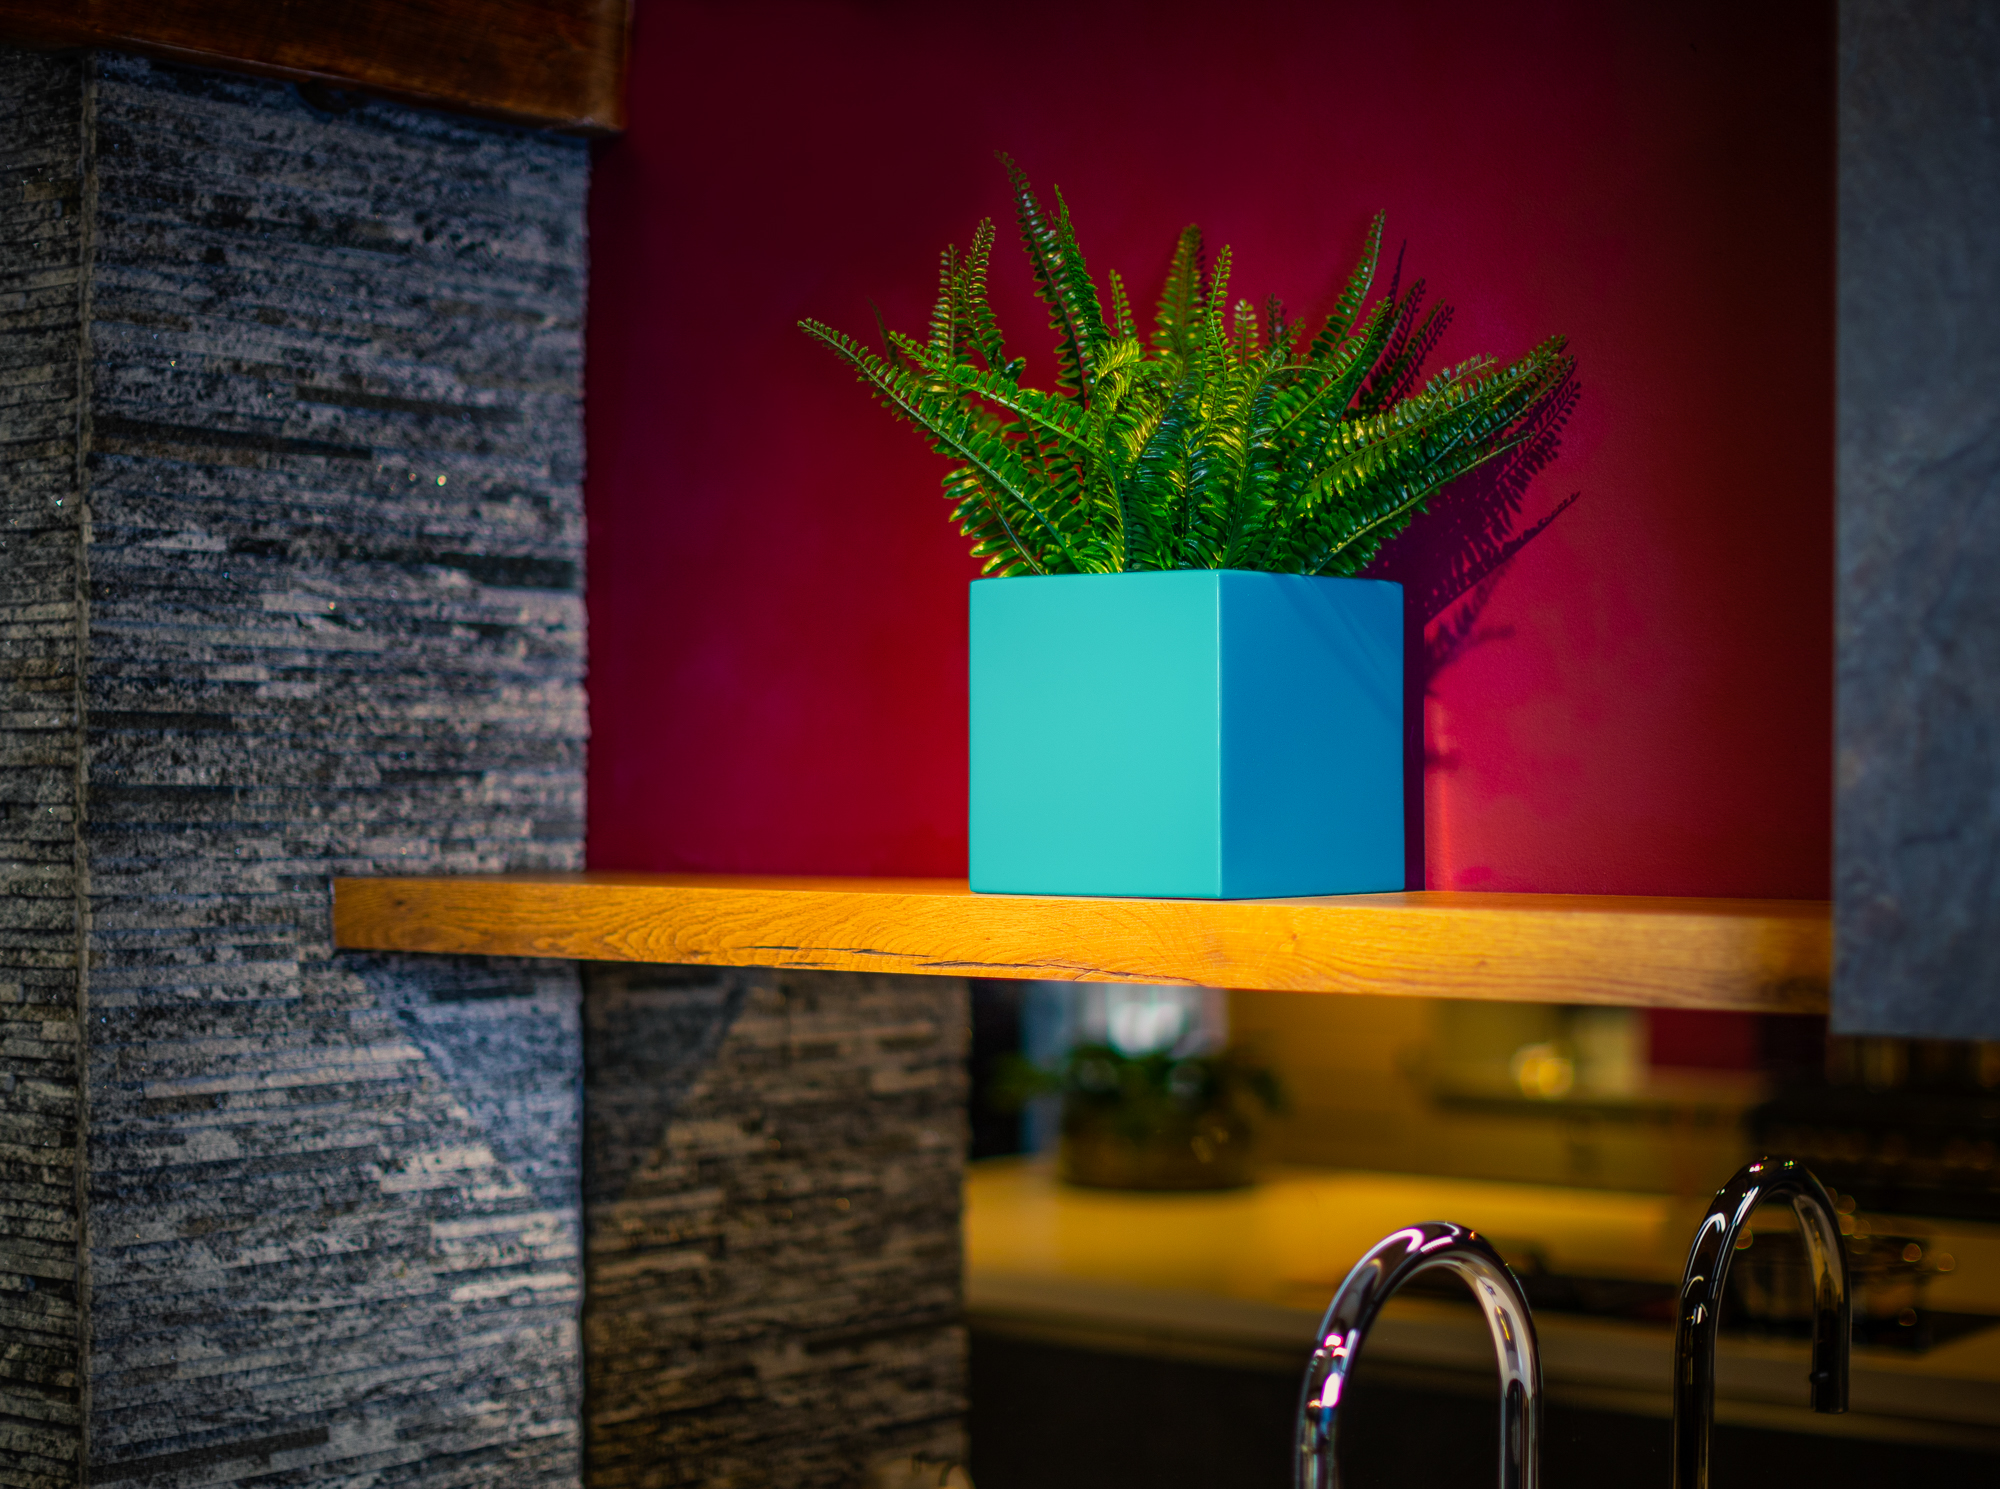 CU 20 PLANTER CUBE BY EUROPLANTERS